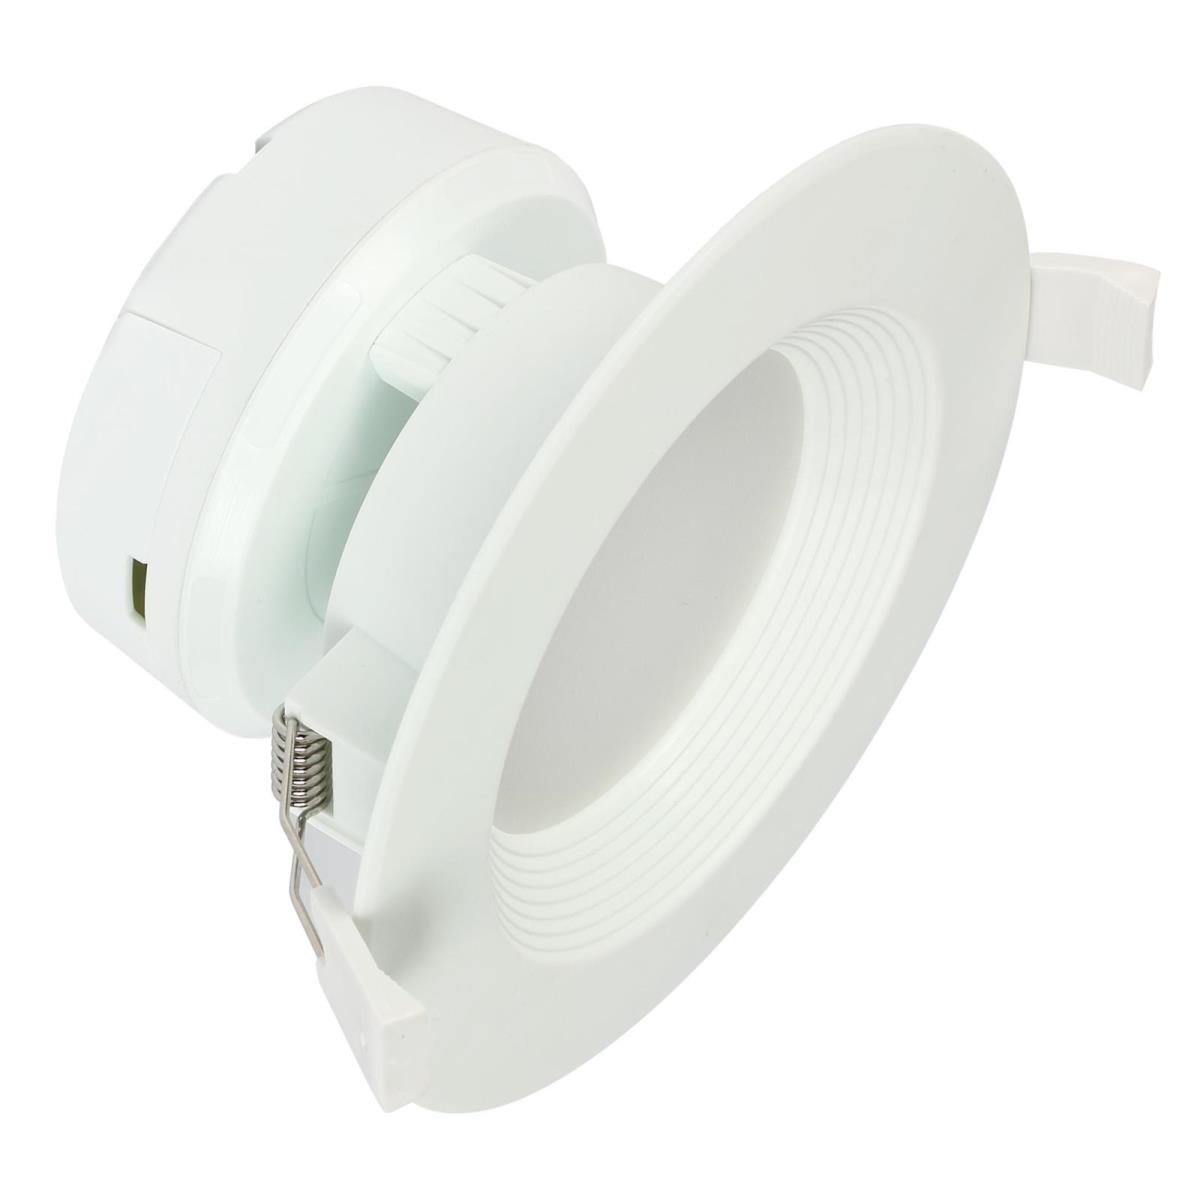 "7W Direct Wire Recessed LED Downlight 4"" Dimmable 2700K, 120 Volt, Box"